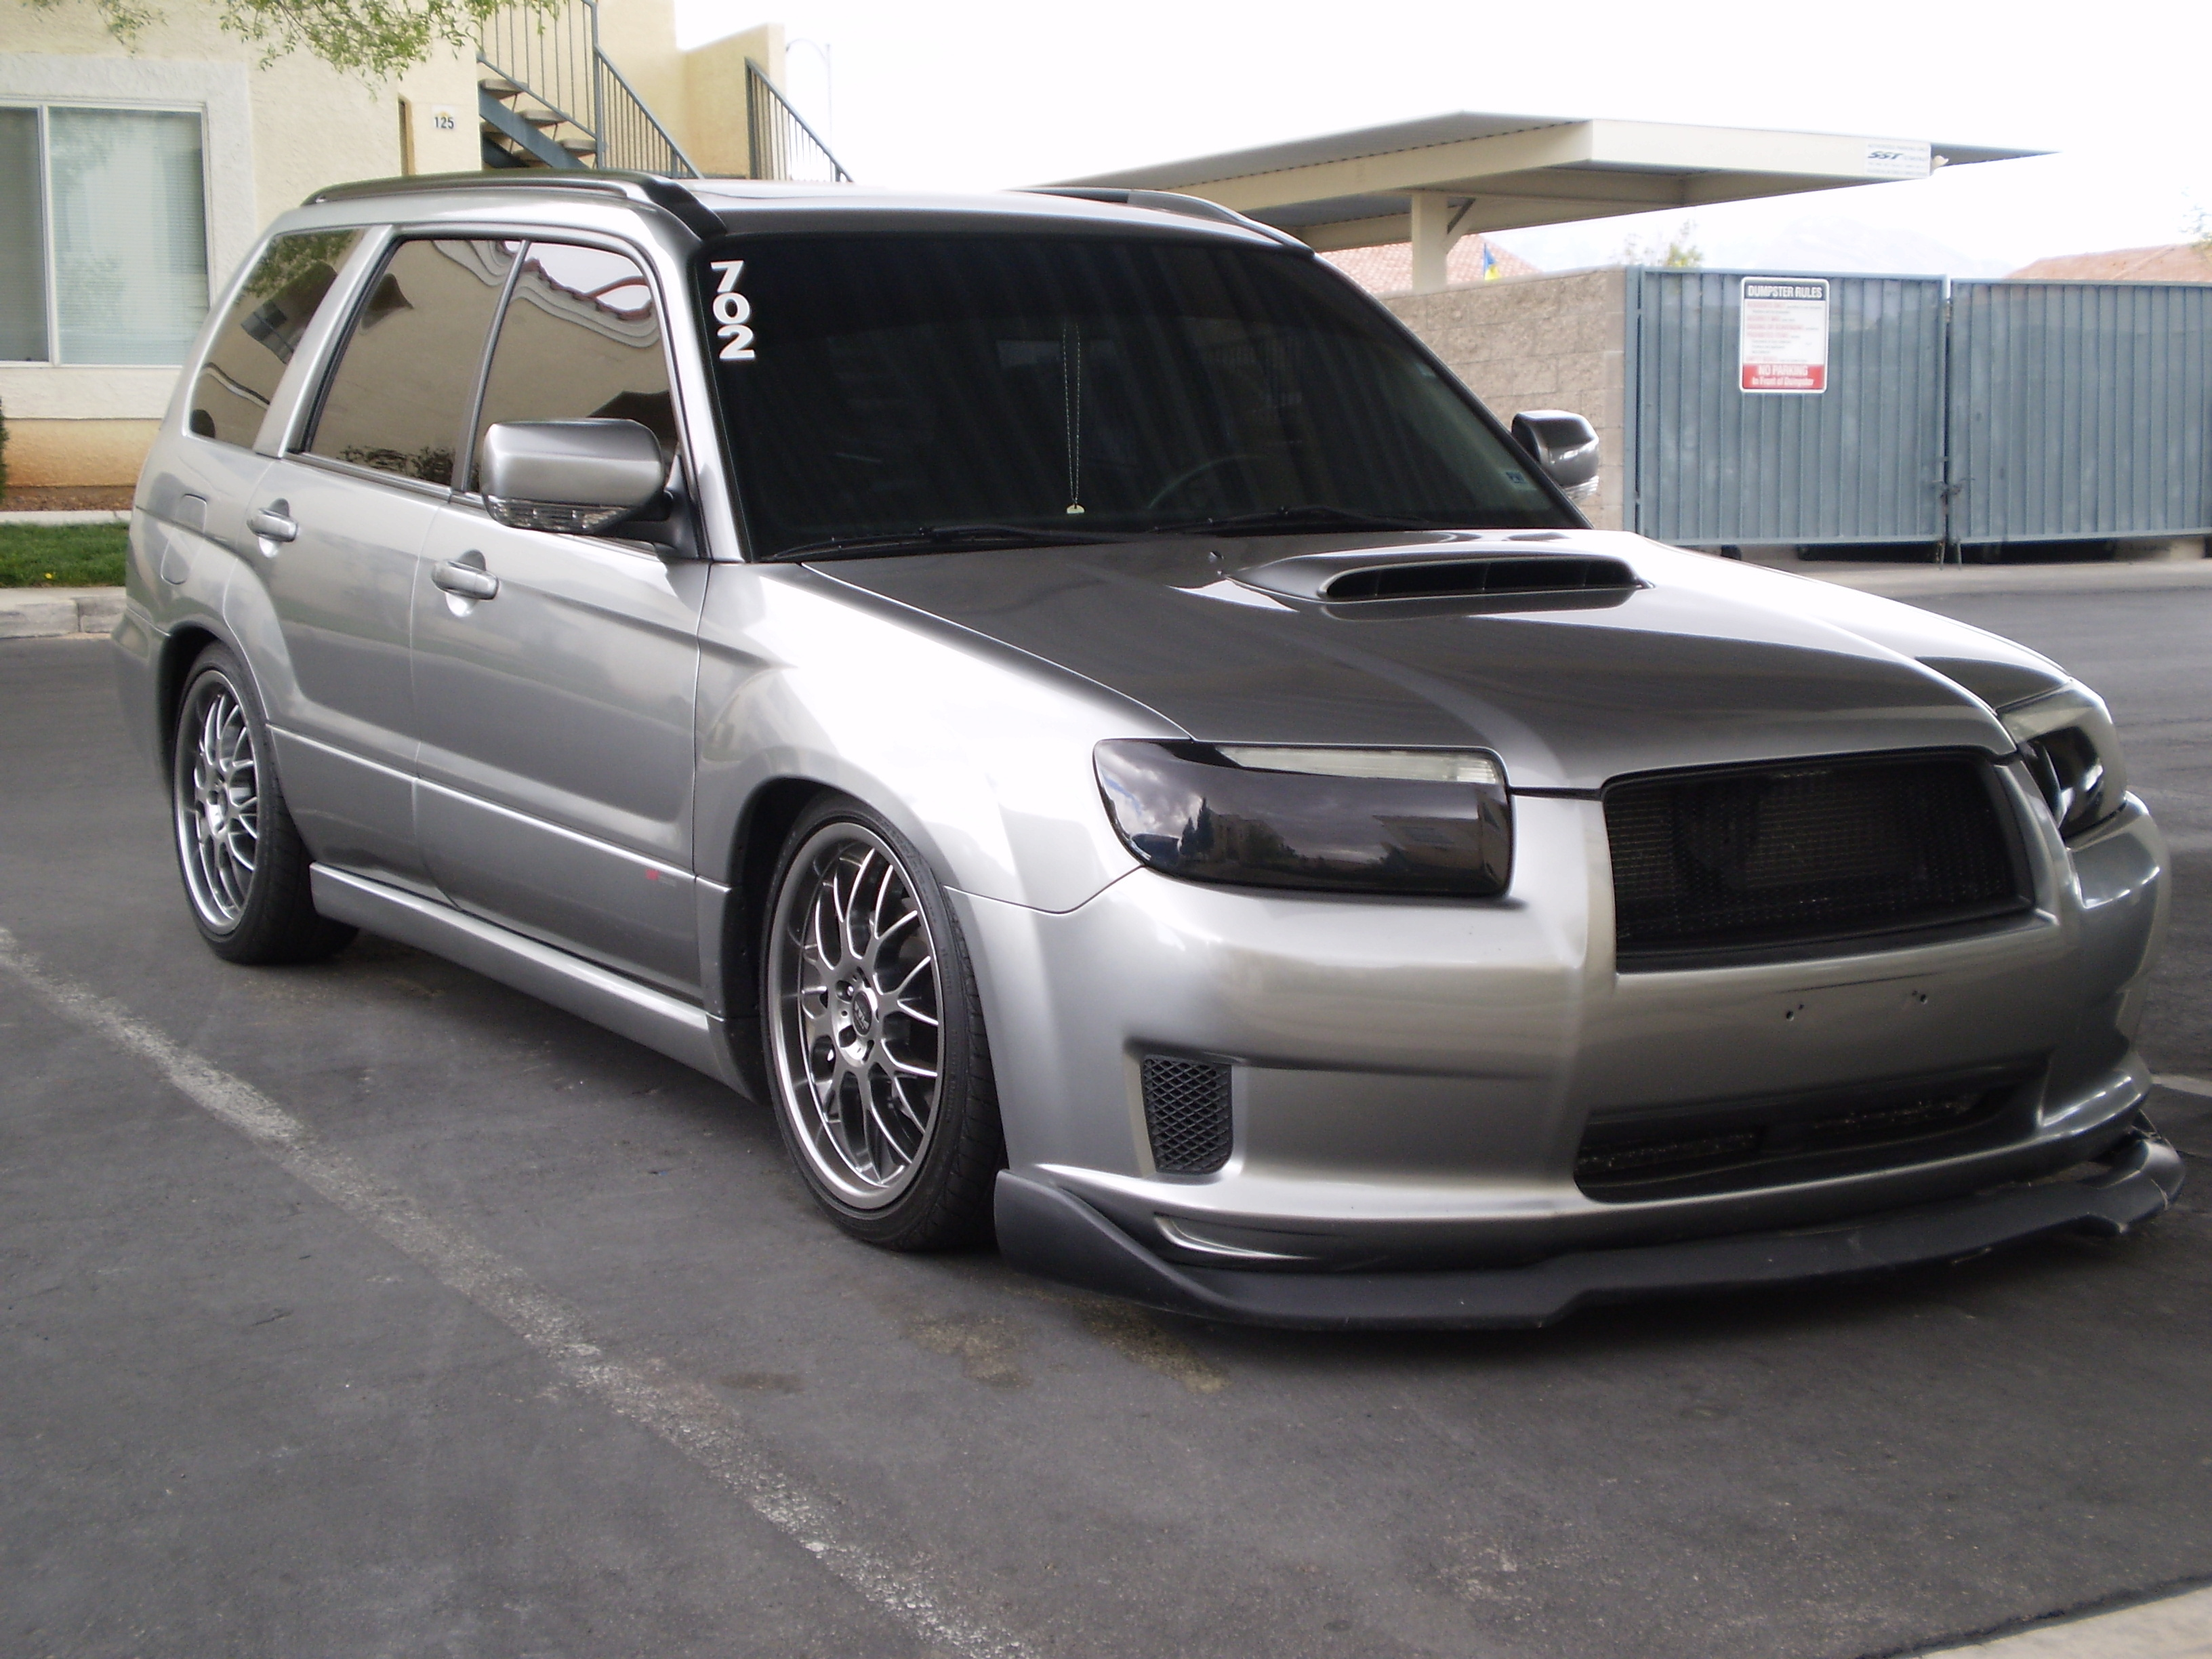 Nobodykliq 2007 Subaru Forester Specs Photos Modification Info At Wiring Diagrams 31922210029 Original